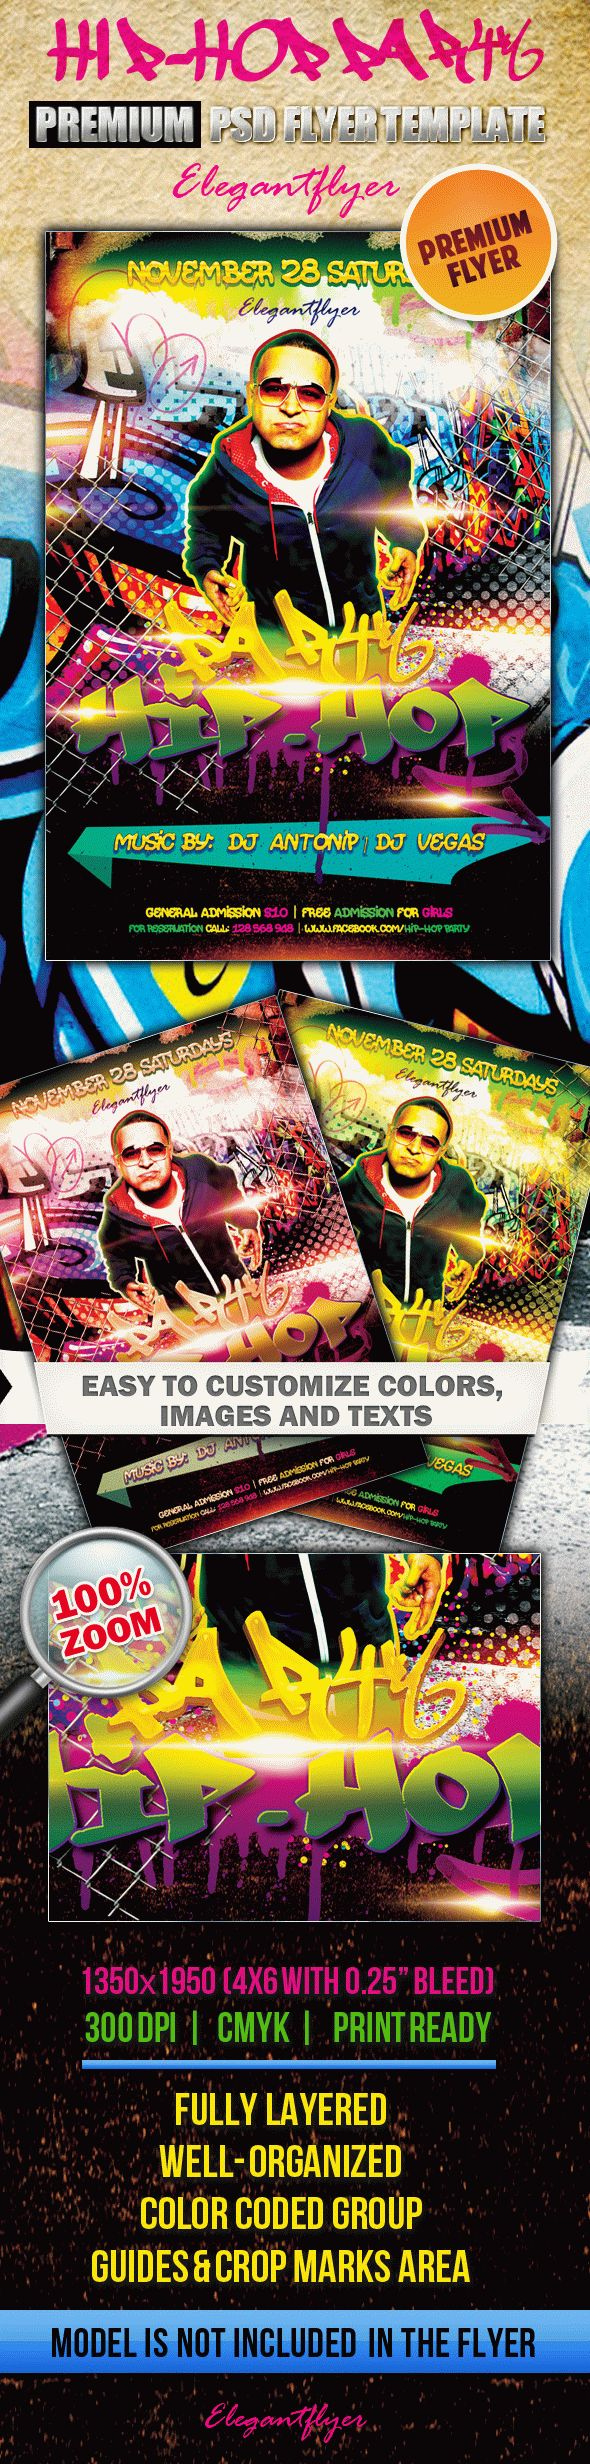 Hiphop Party  Premium Club Flyer Psd Template intended for Printable Hip Hop Certificate Template 6 Explosive Ideas